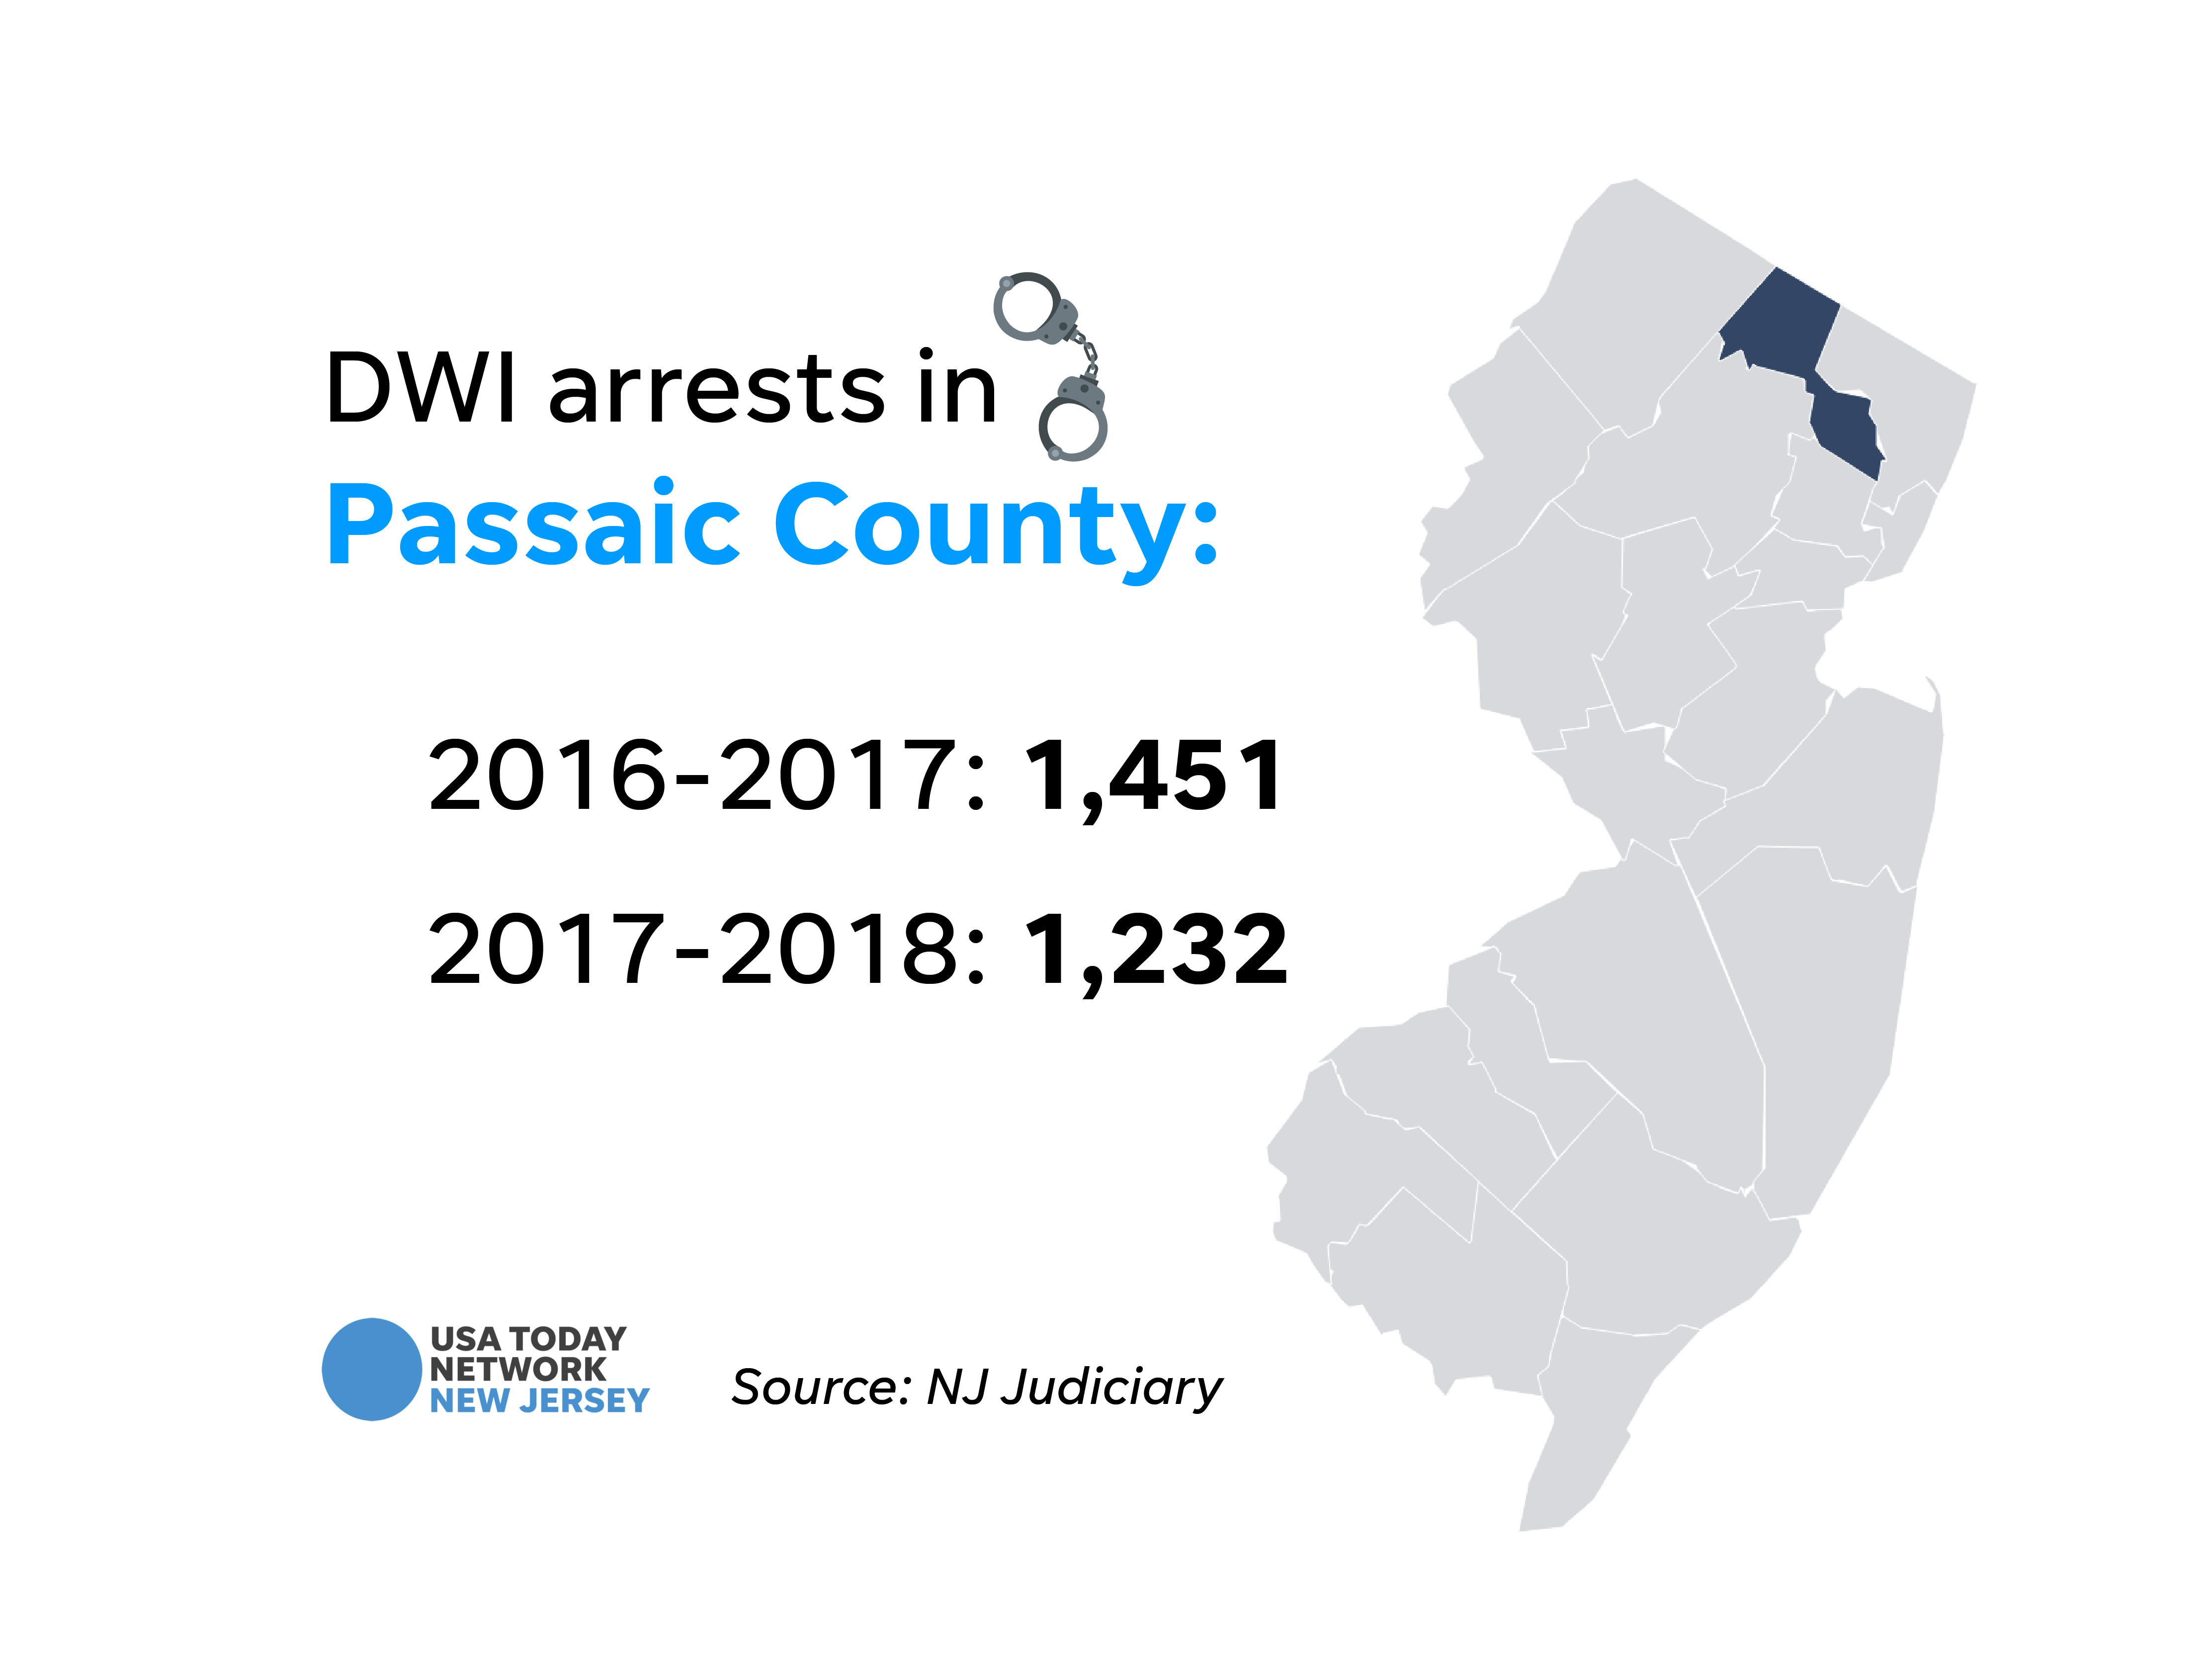 DWI arrests in Passaic County.